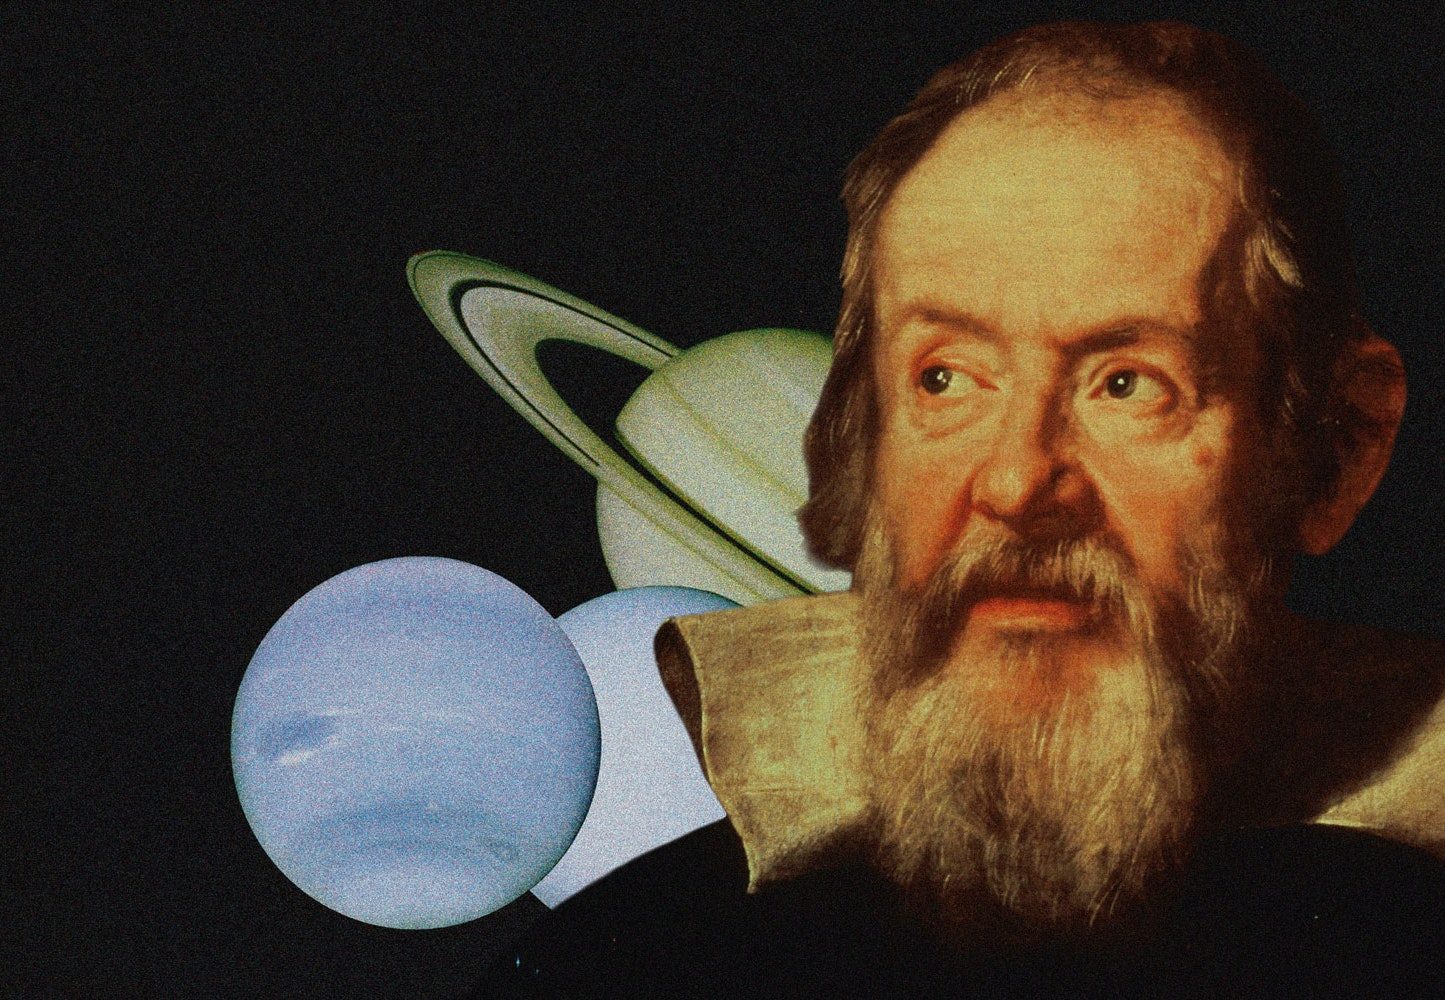 galileo galilei Galileo galilei was a famous italian scientist who studied astronomy, physics, and optics and is generally credited with inventing the telescope.